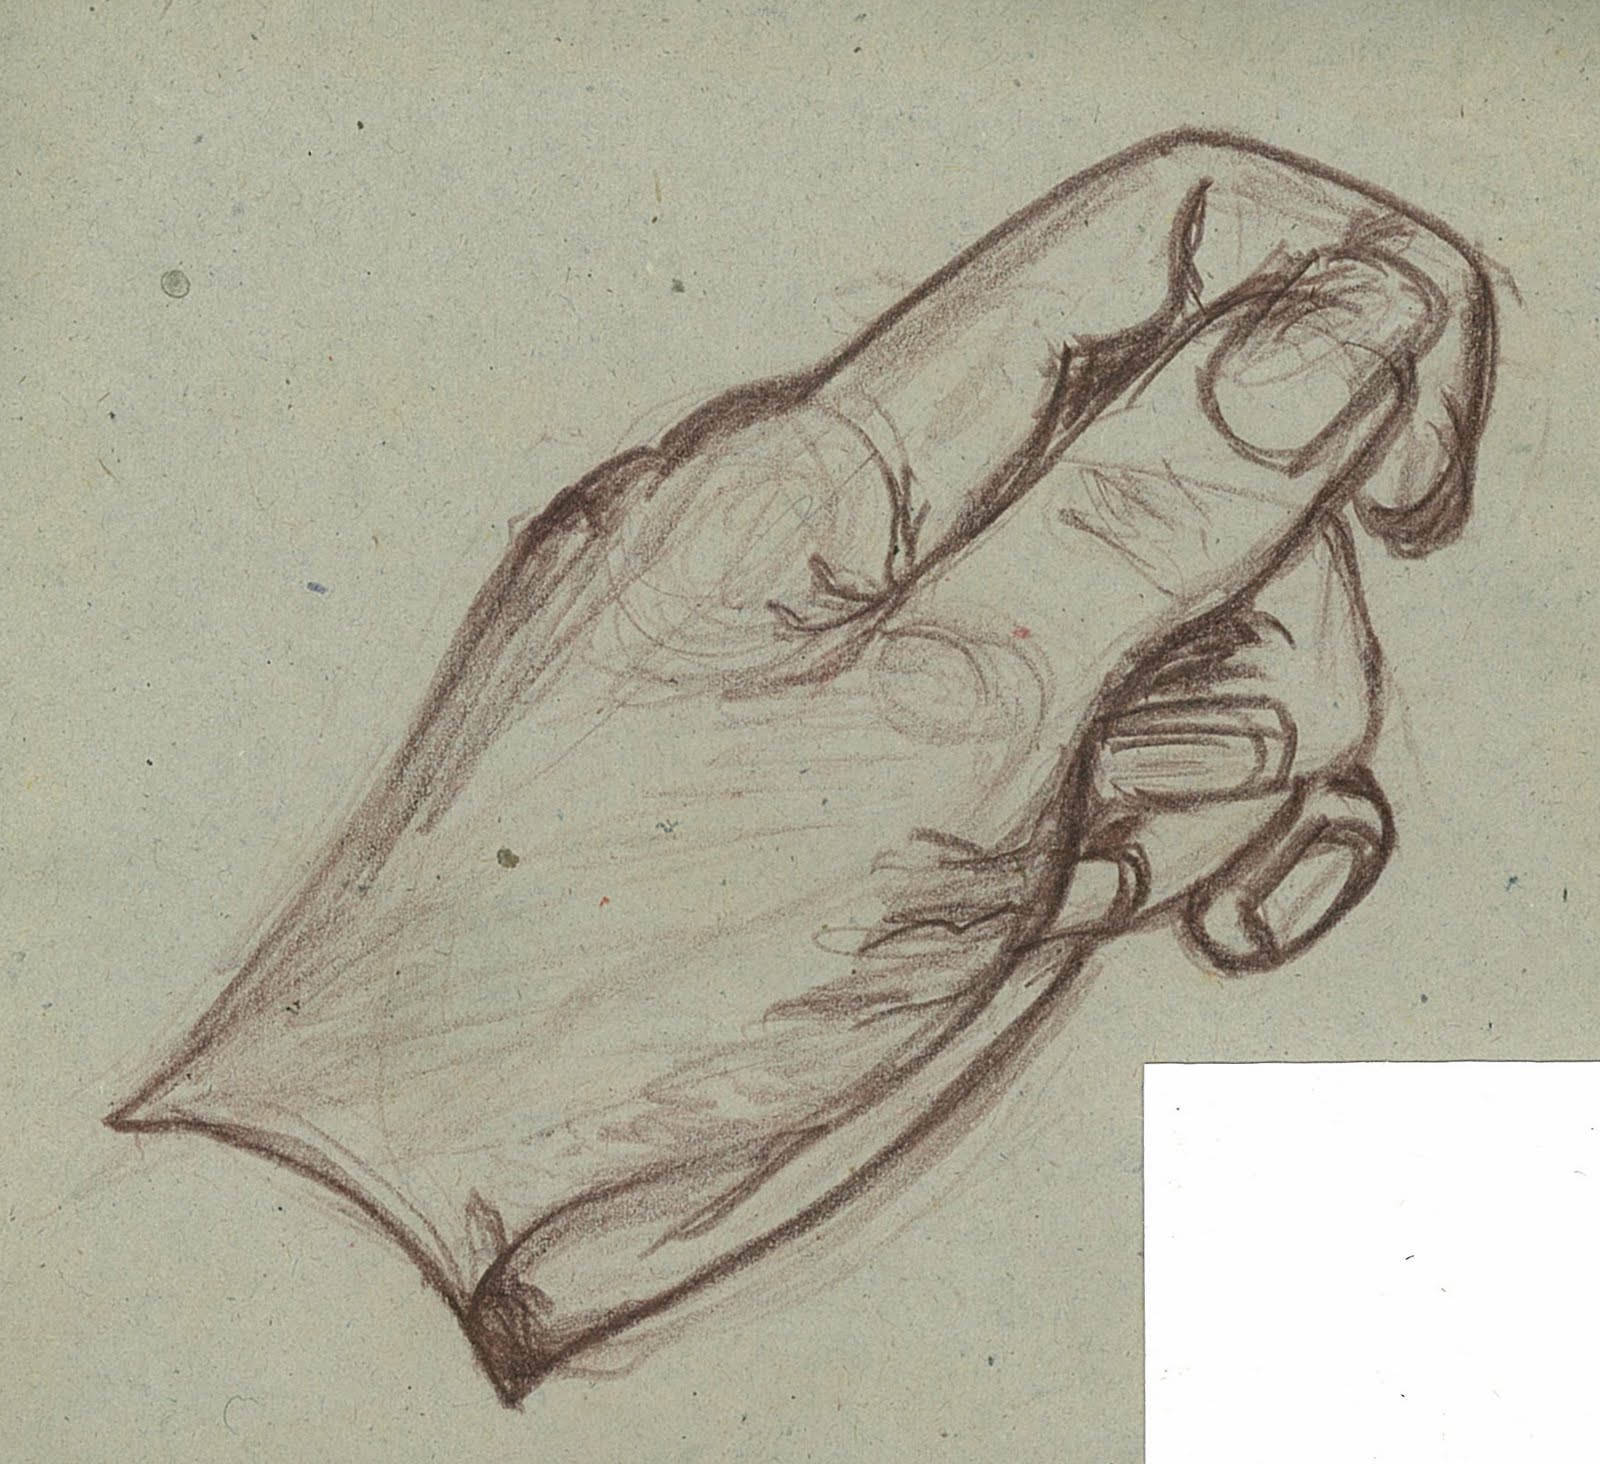 Line Drawing Hand : Kris art works hand line drawing